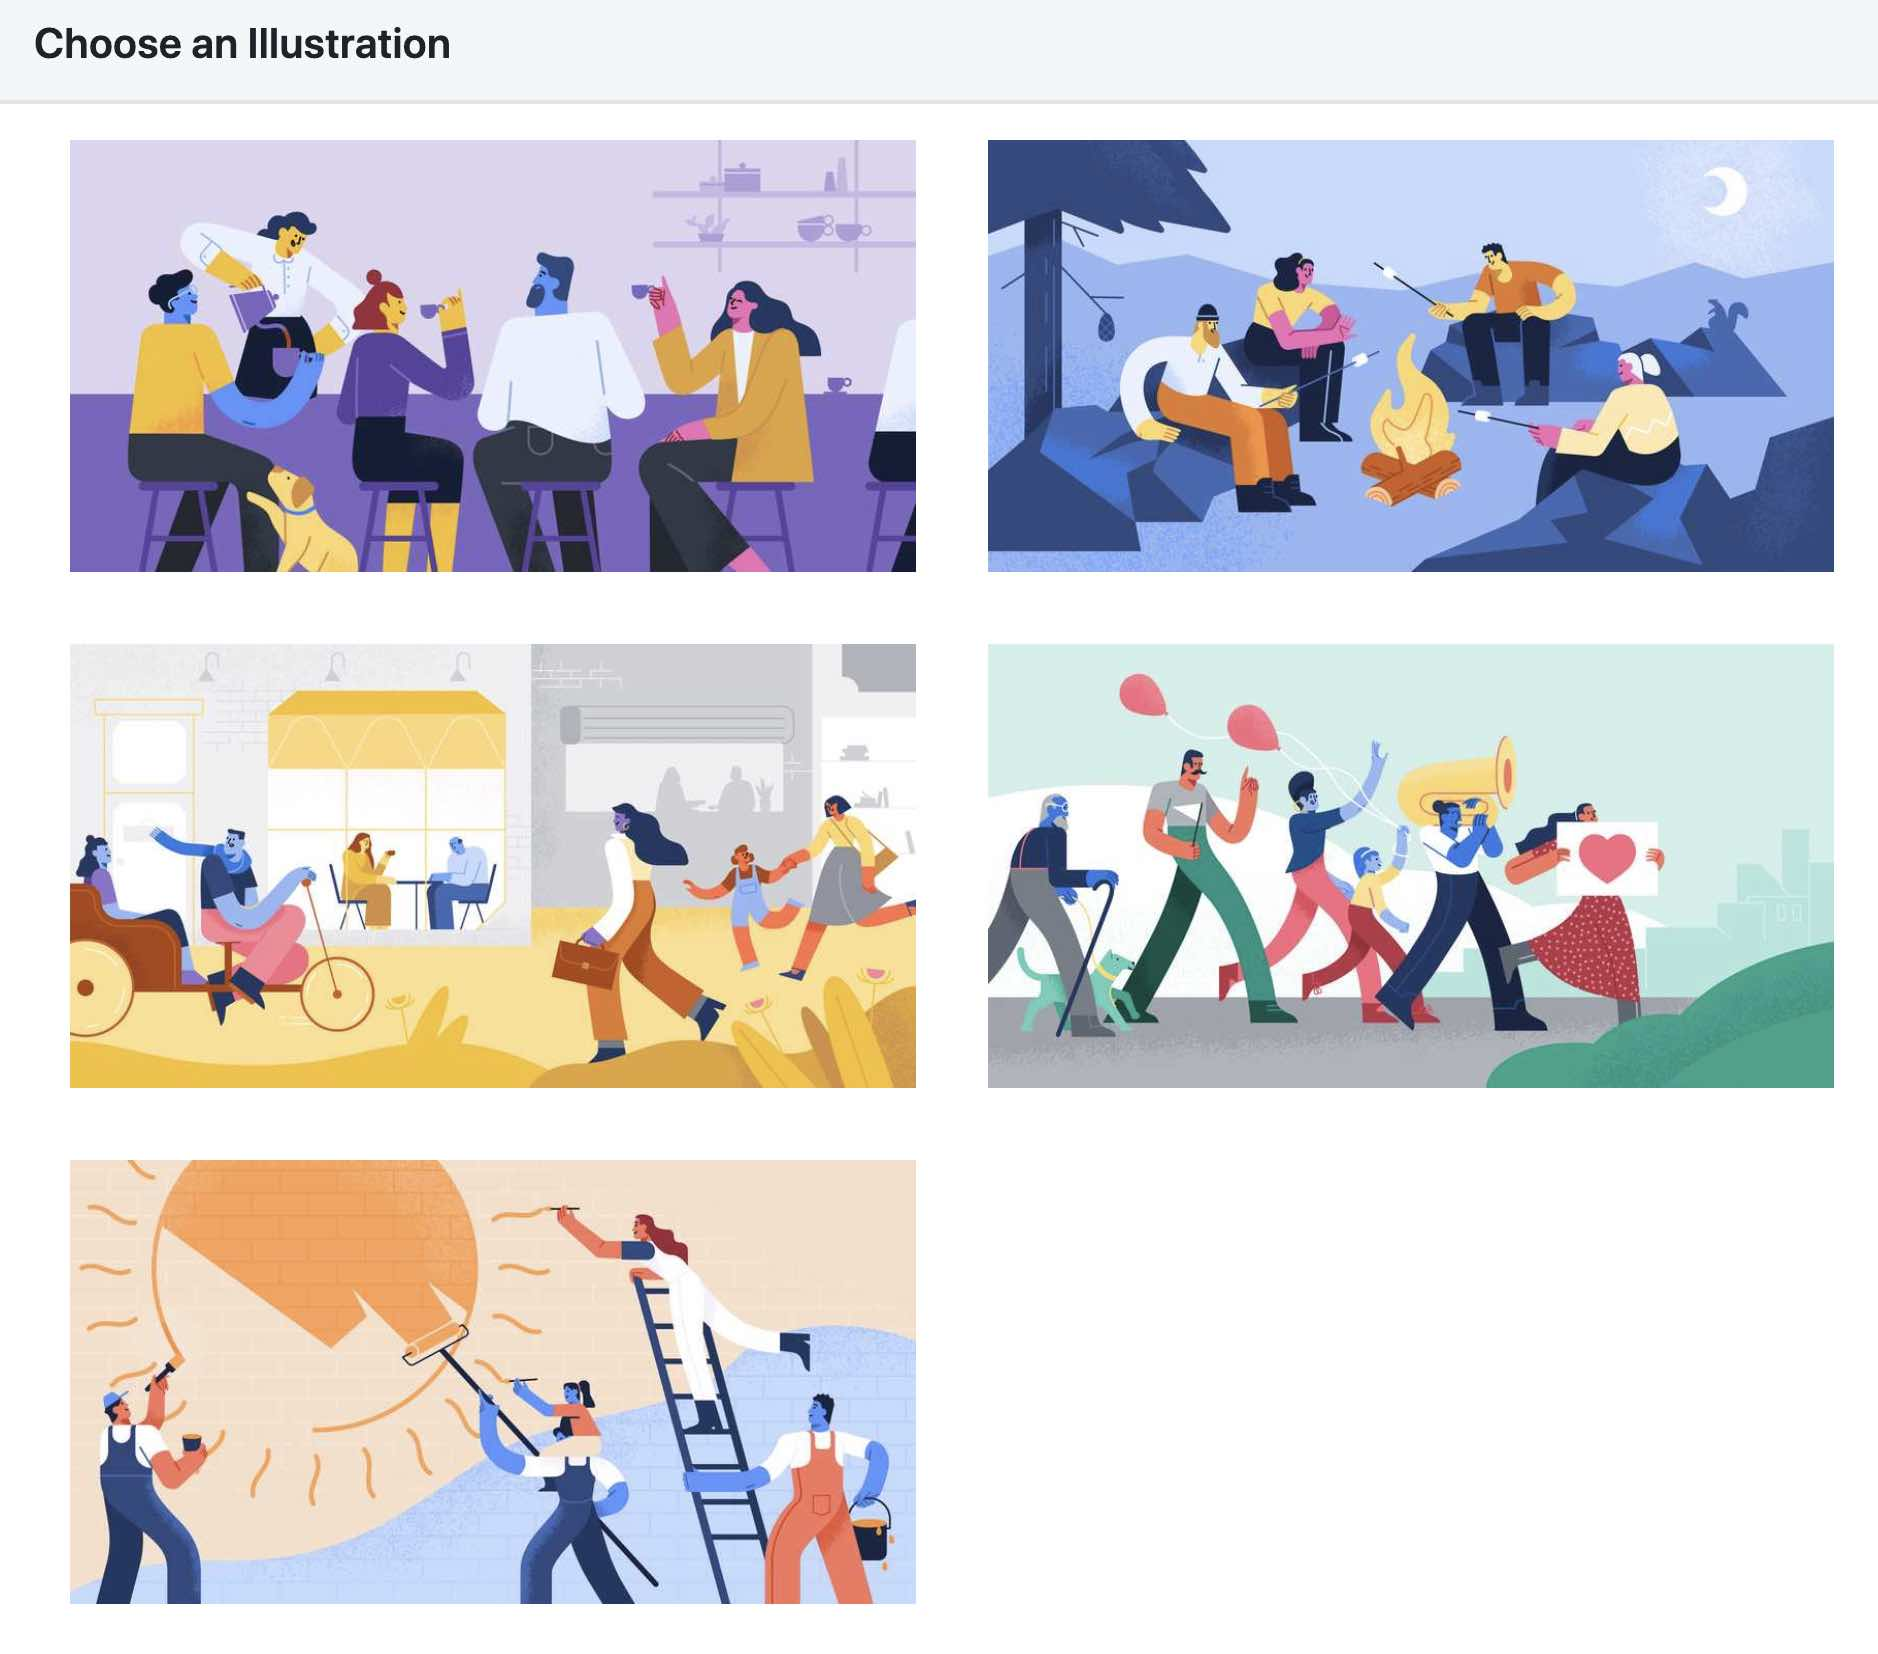 5 illustrations are shown to choose from for a Facebook Group, each showing a group of people doing something different like camping, marching in a band, painting a sun, drinking at a bar, or moving through a town